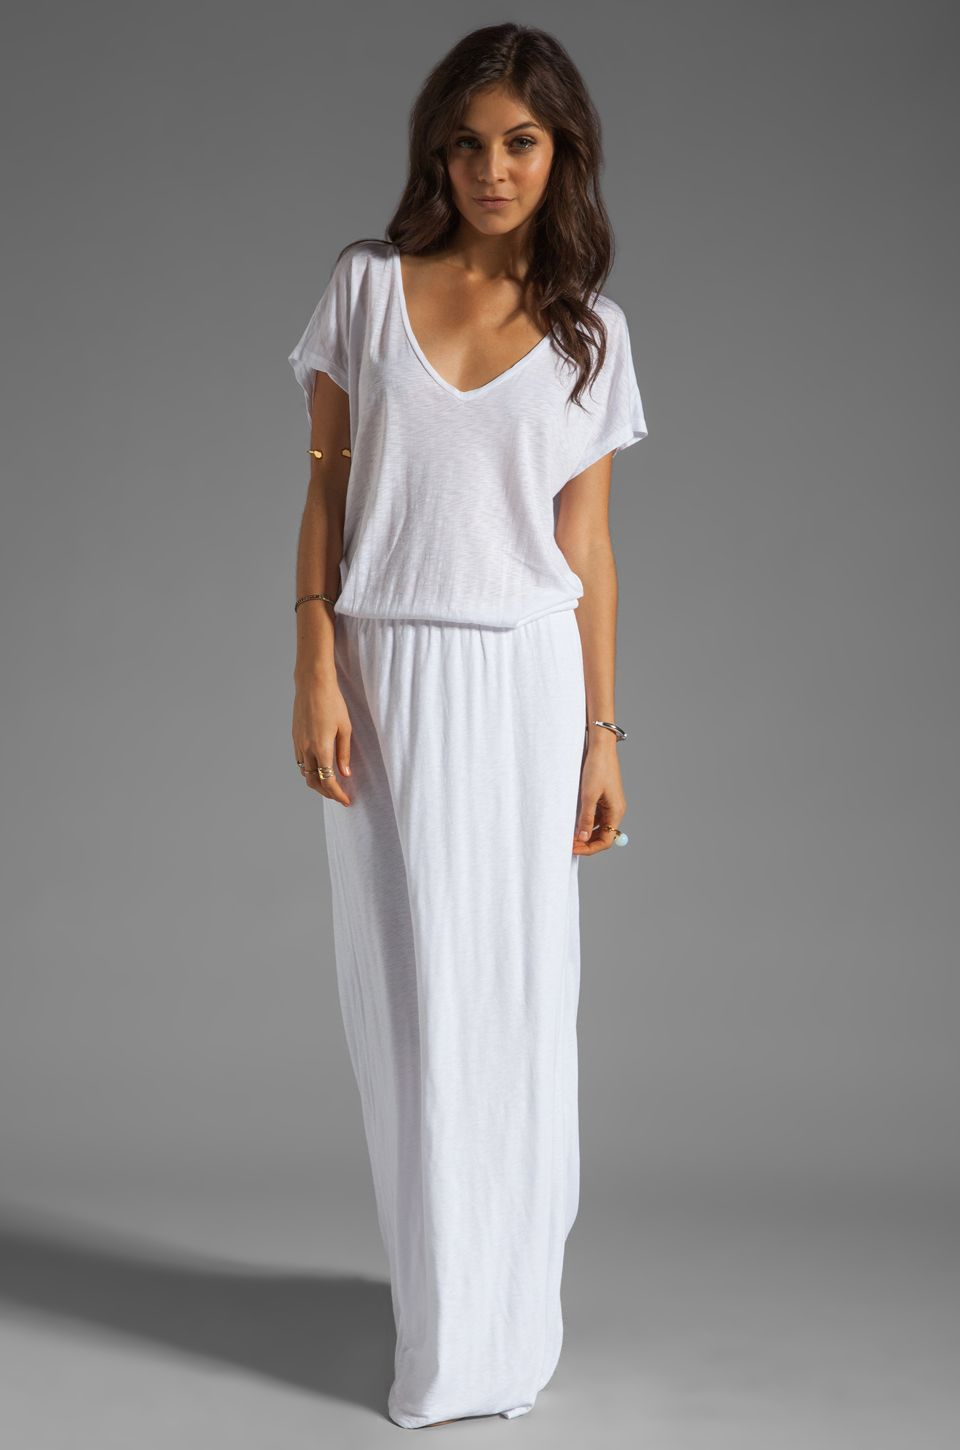 Lizia luxe slub maxi dress style pinterest maxi dresses